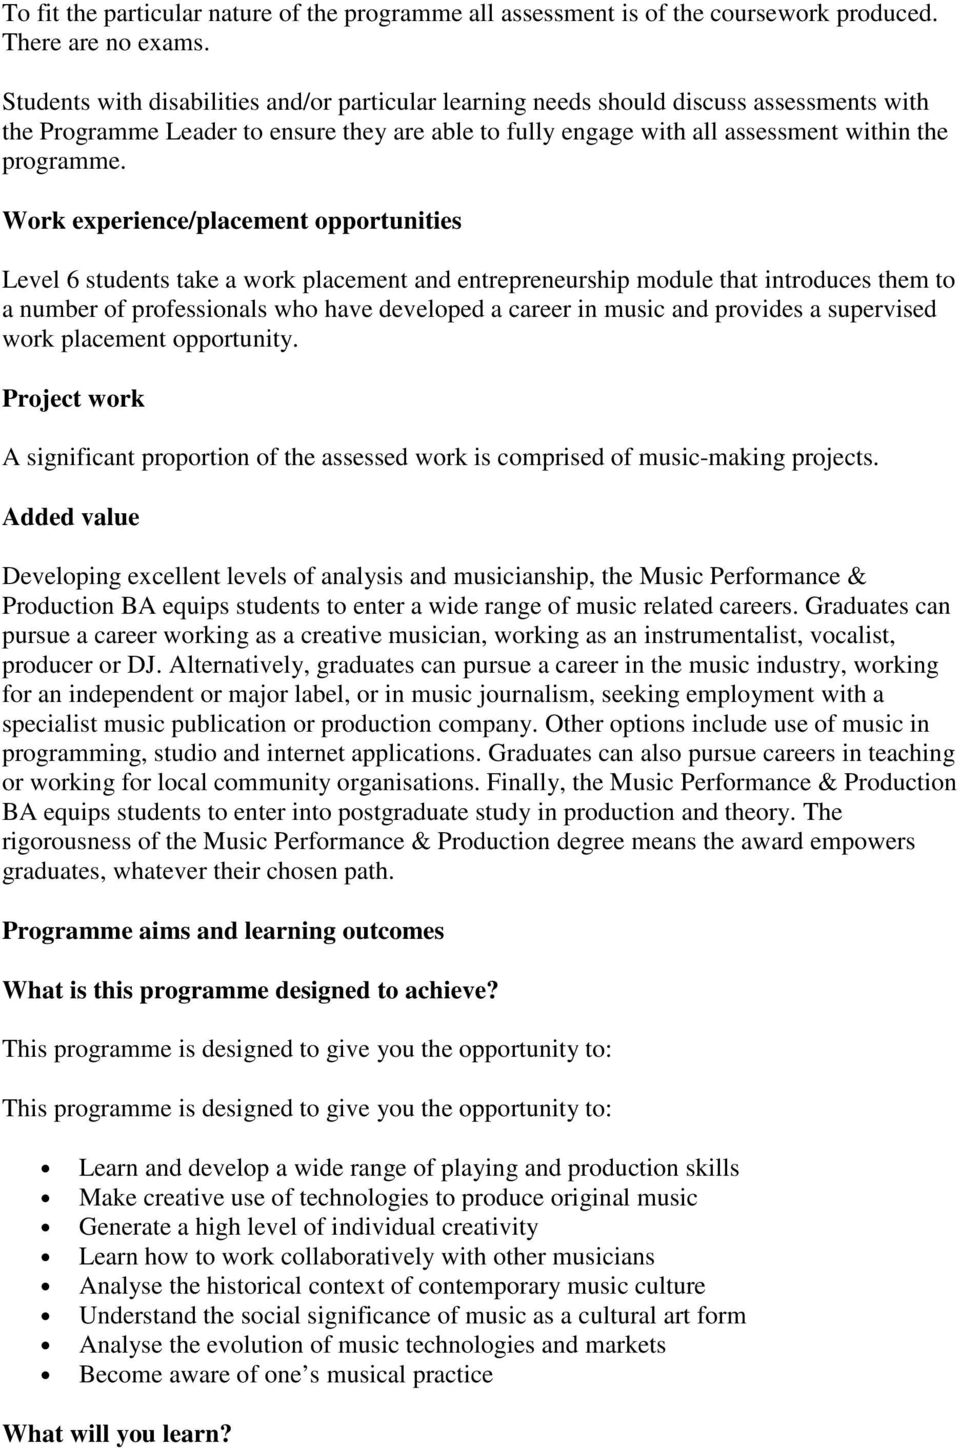 Work experience/placement opportunities Level 6 students take a work placement and entrepreneurship module that introduces them to a number of professionals who have developed a career in music and